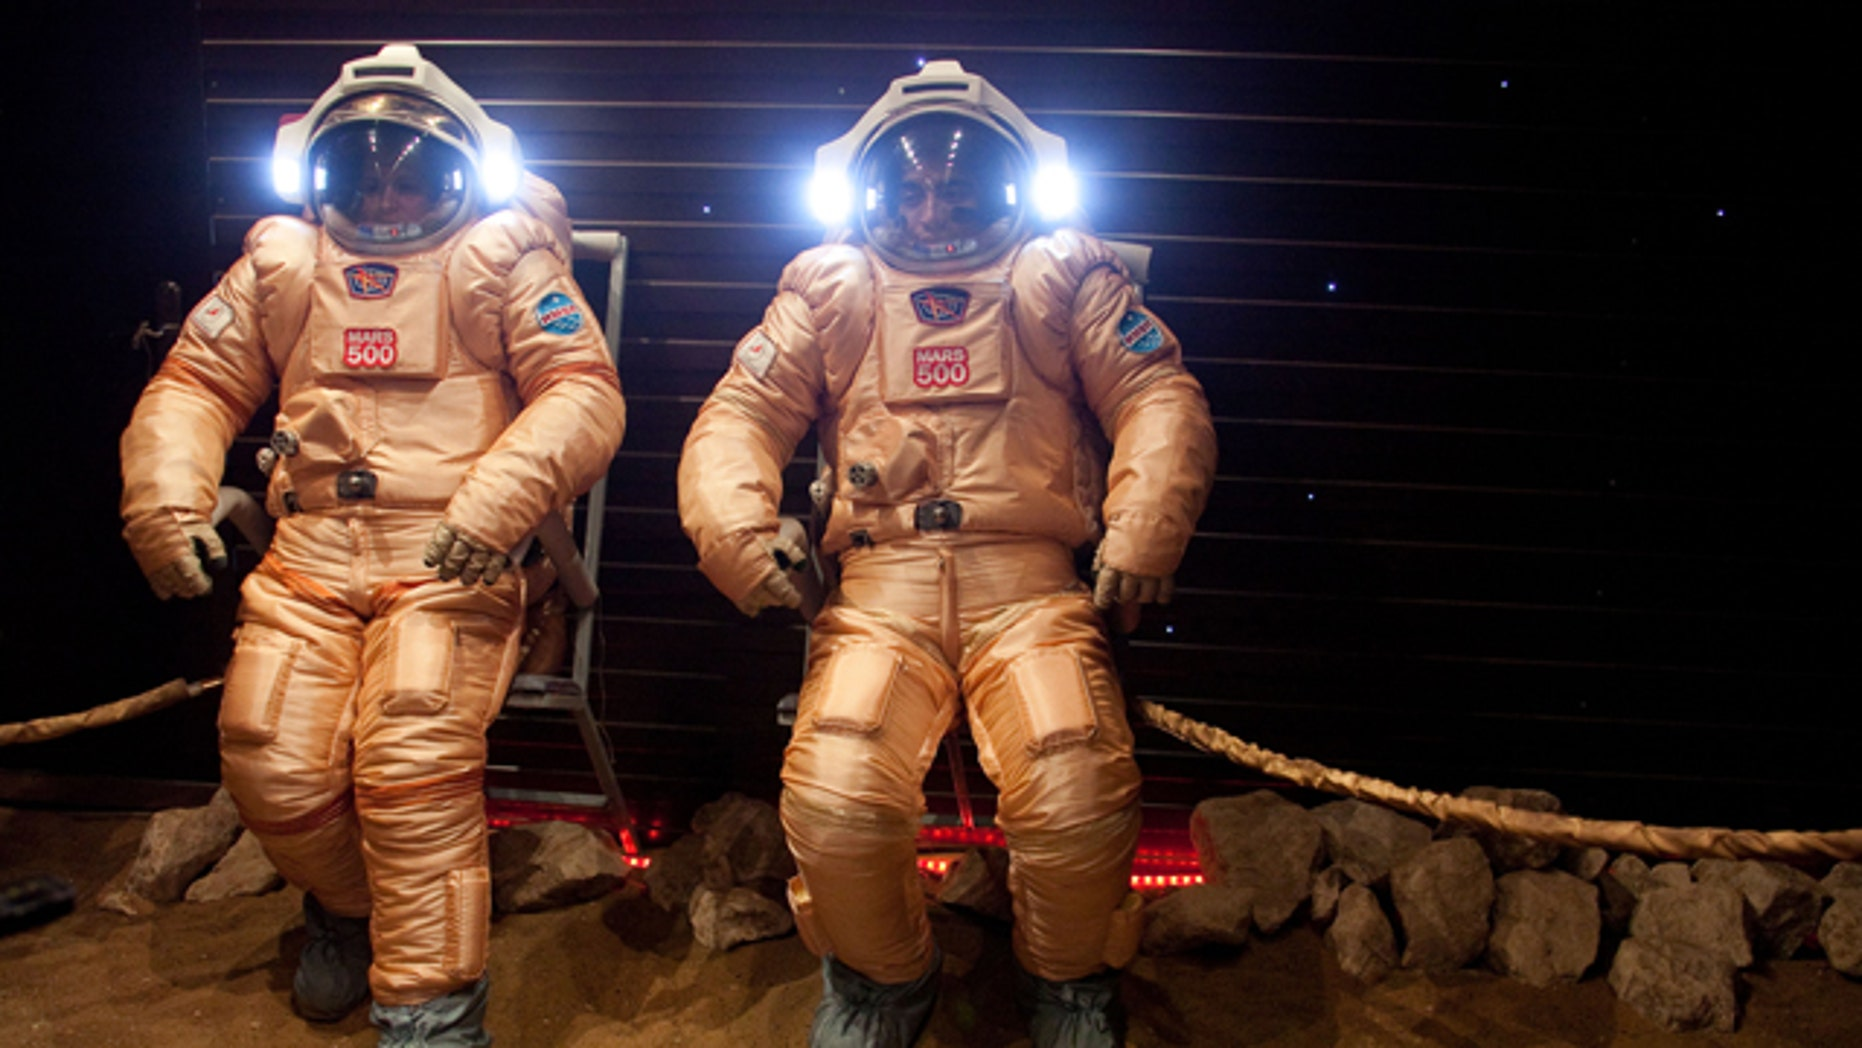 May 24, 2010: Researchers test spacesuits on a simulated Mars surface during a training session at Moscow's Institute for Medical and Biological Problems.